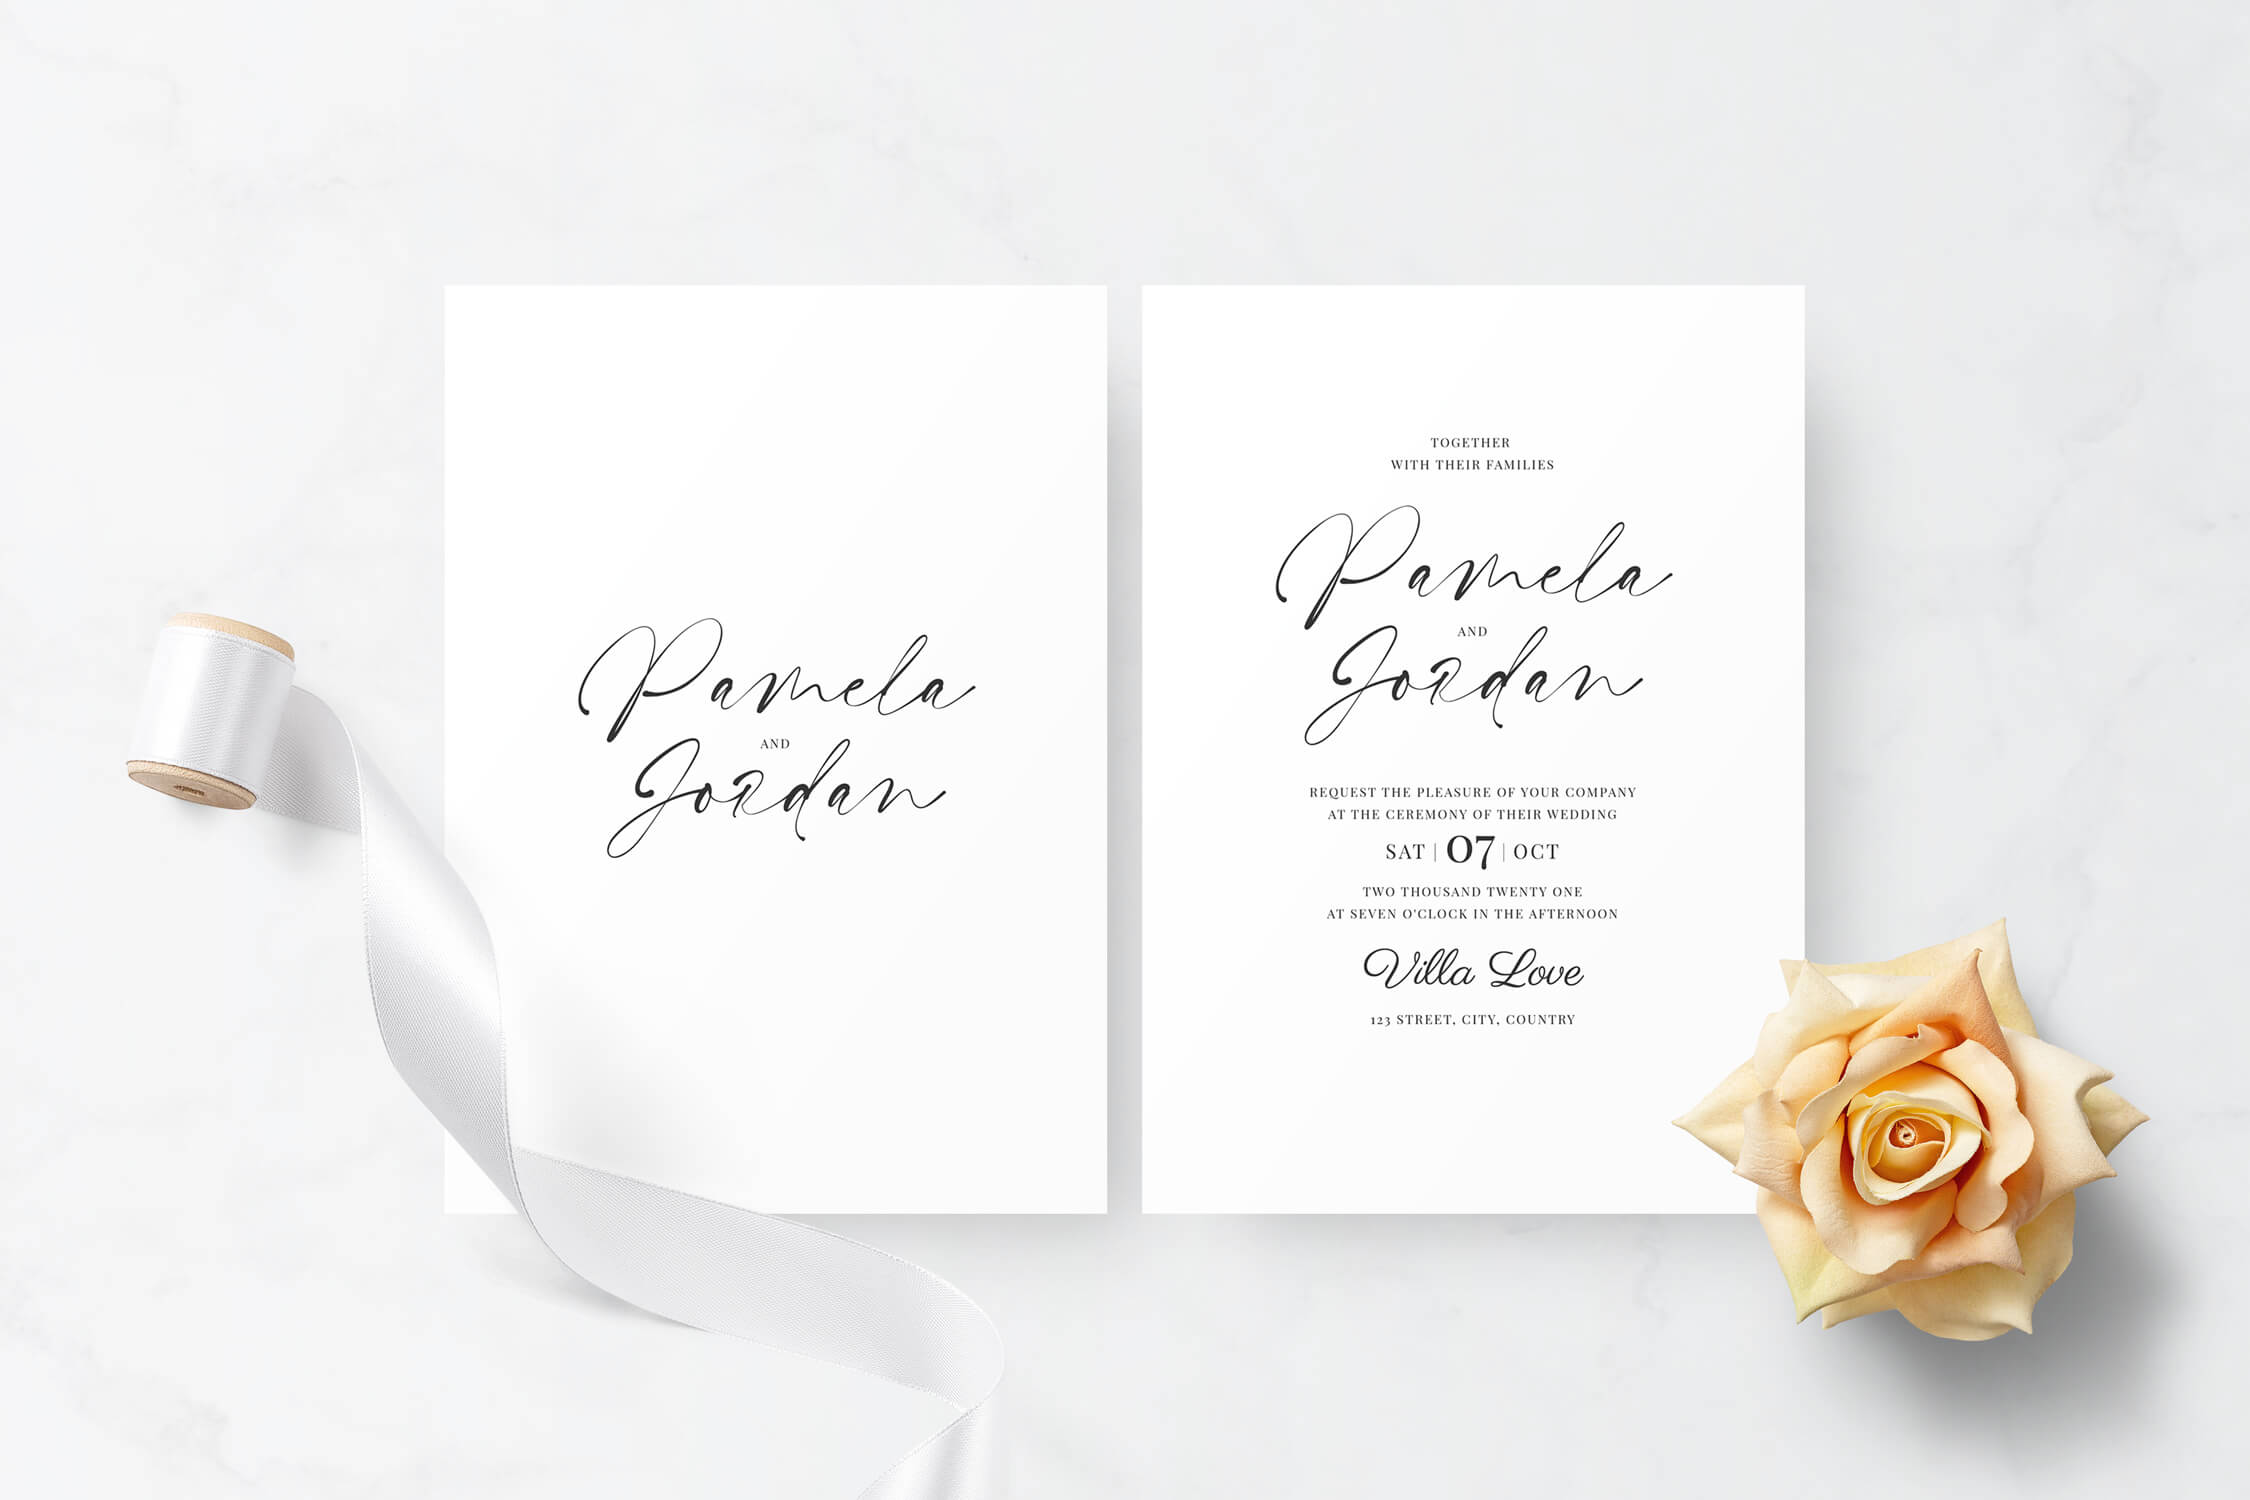 Basari Design - Invitation 005